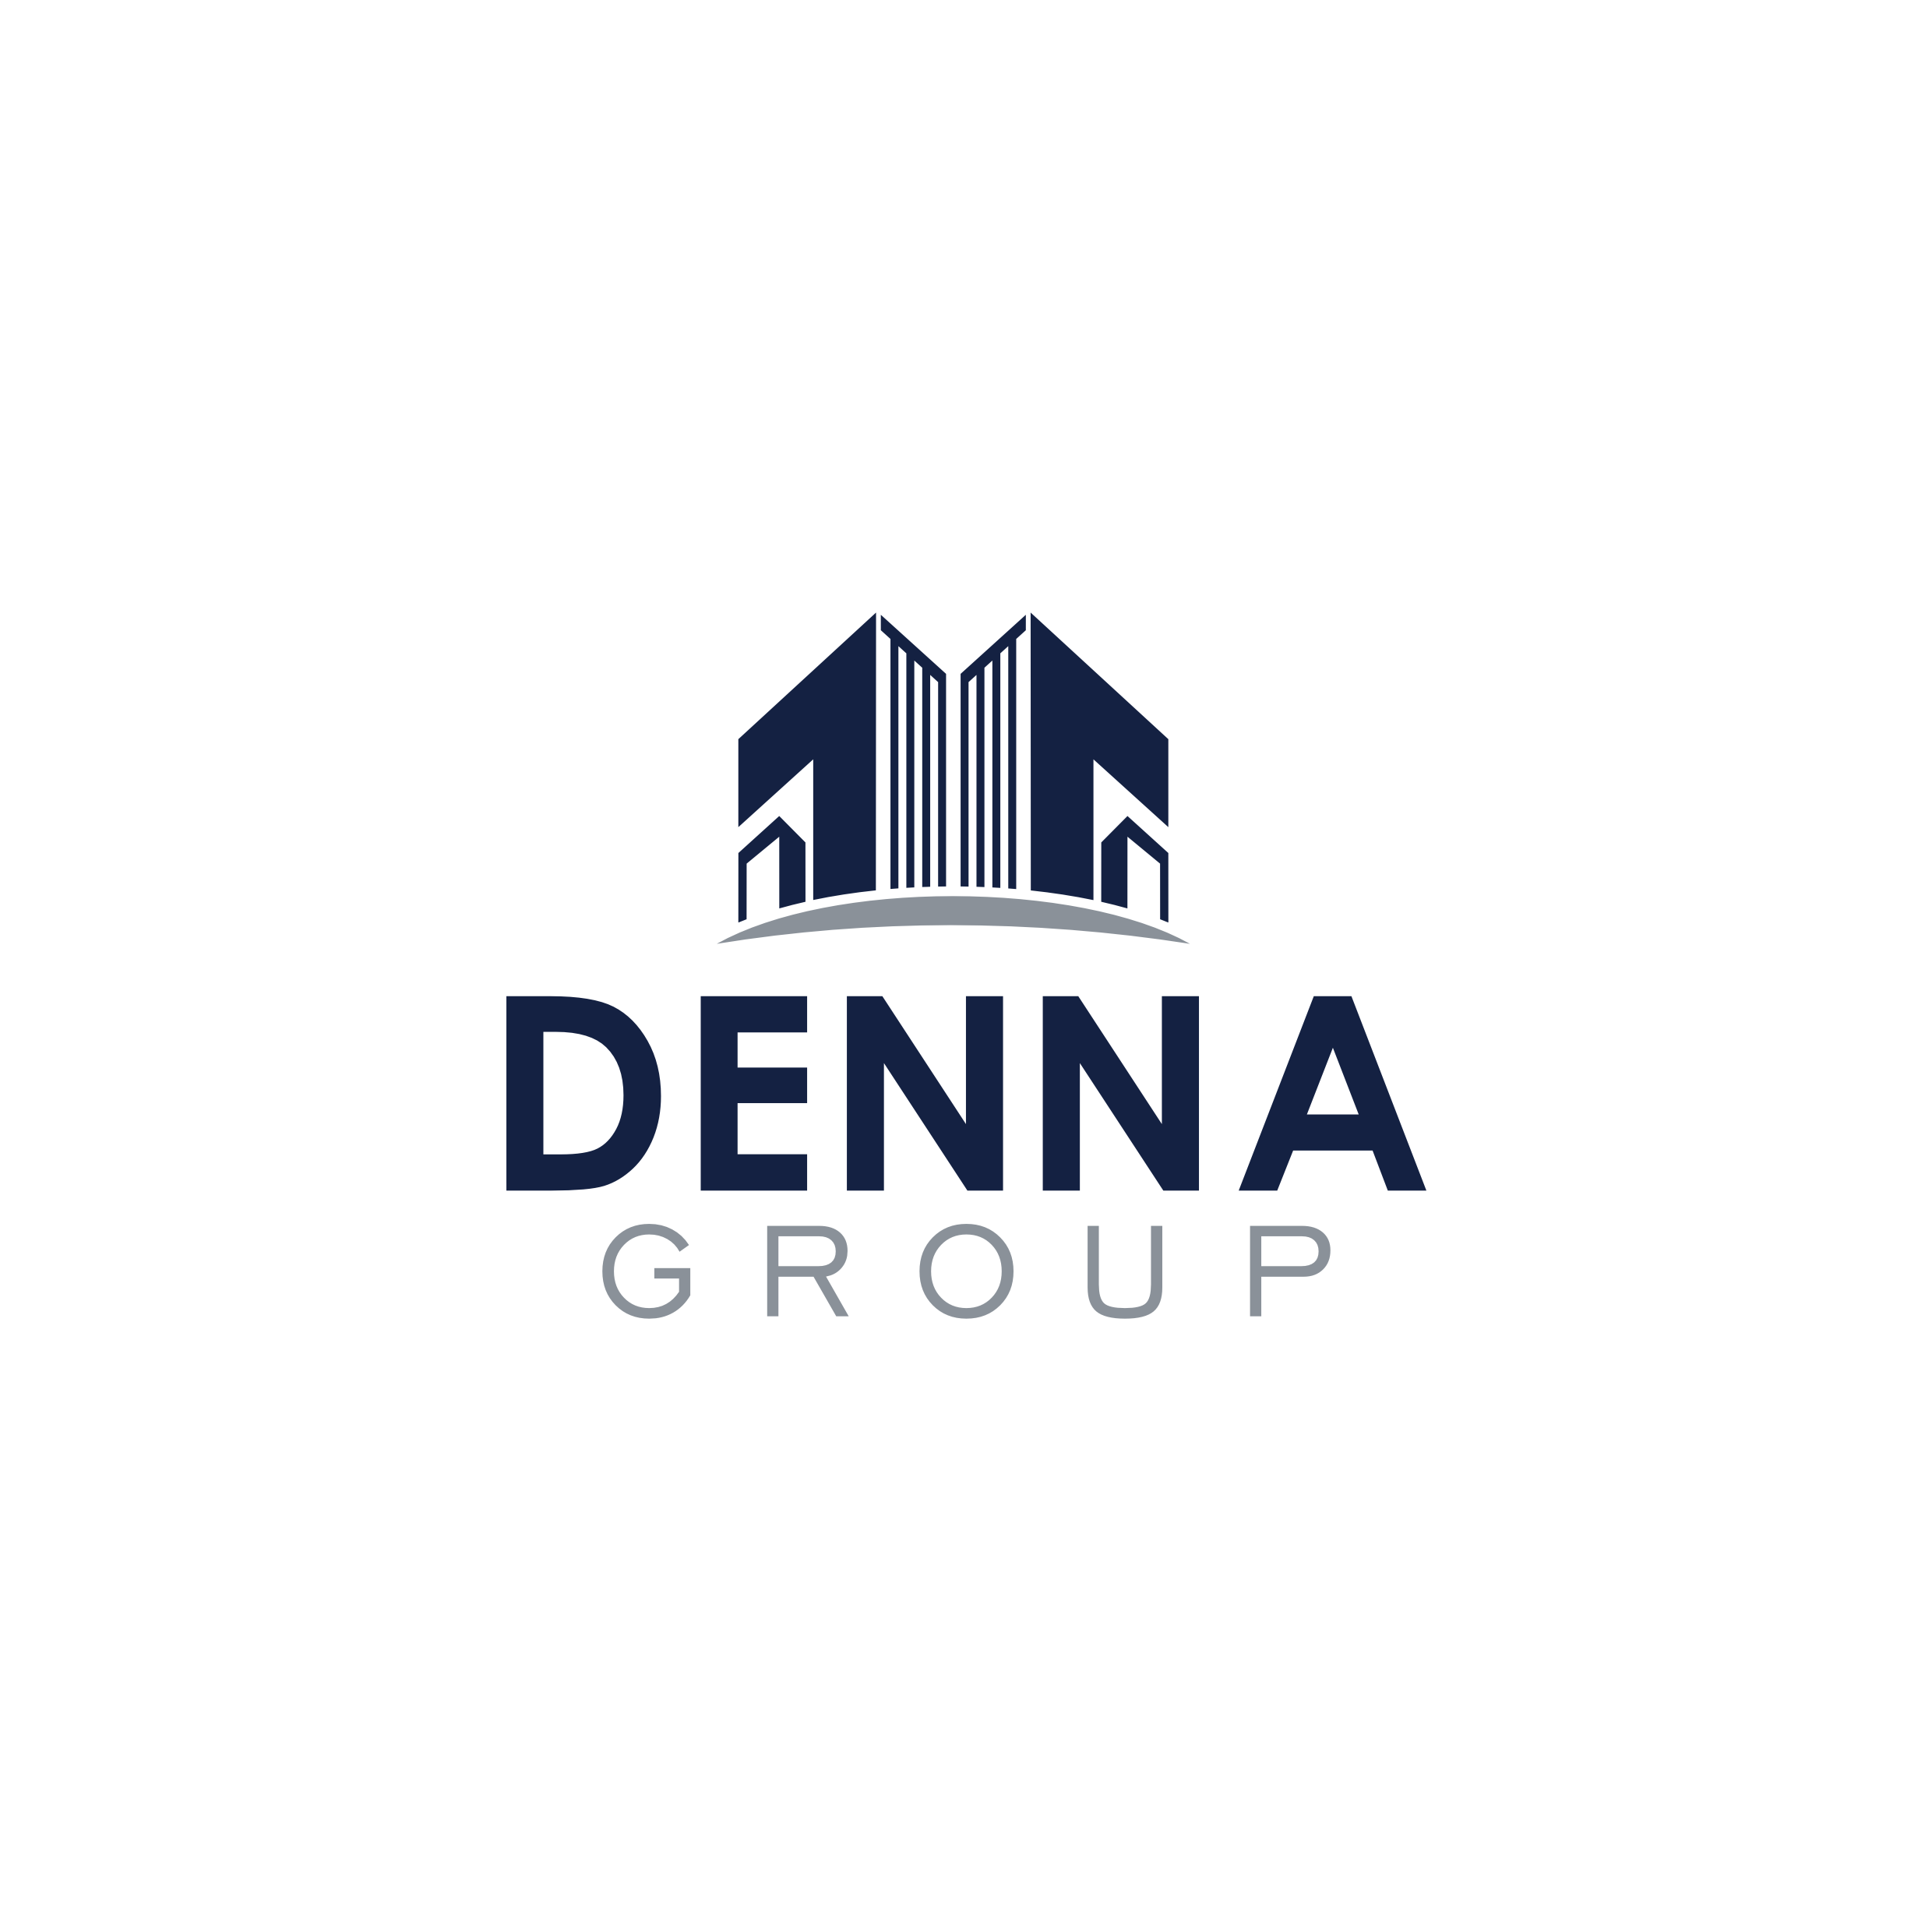 Logo Design by hkdesign - Entry No. 213 in the Logo Design Contest Denna Group Logo Design.